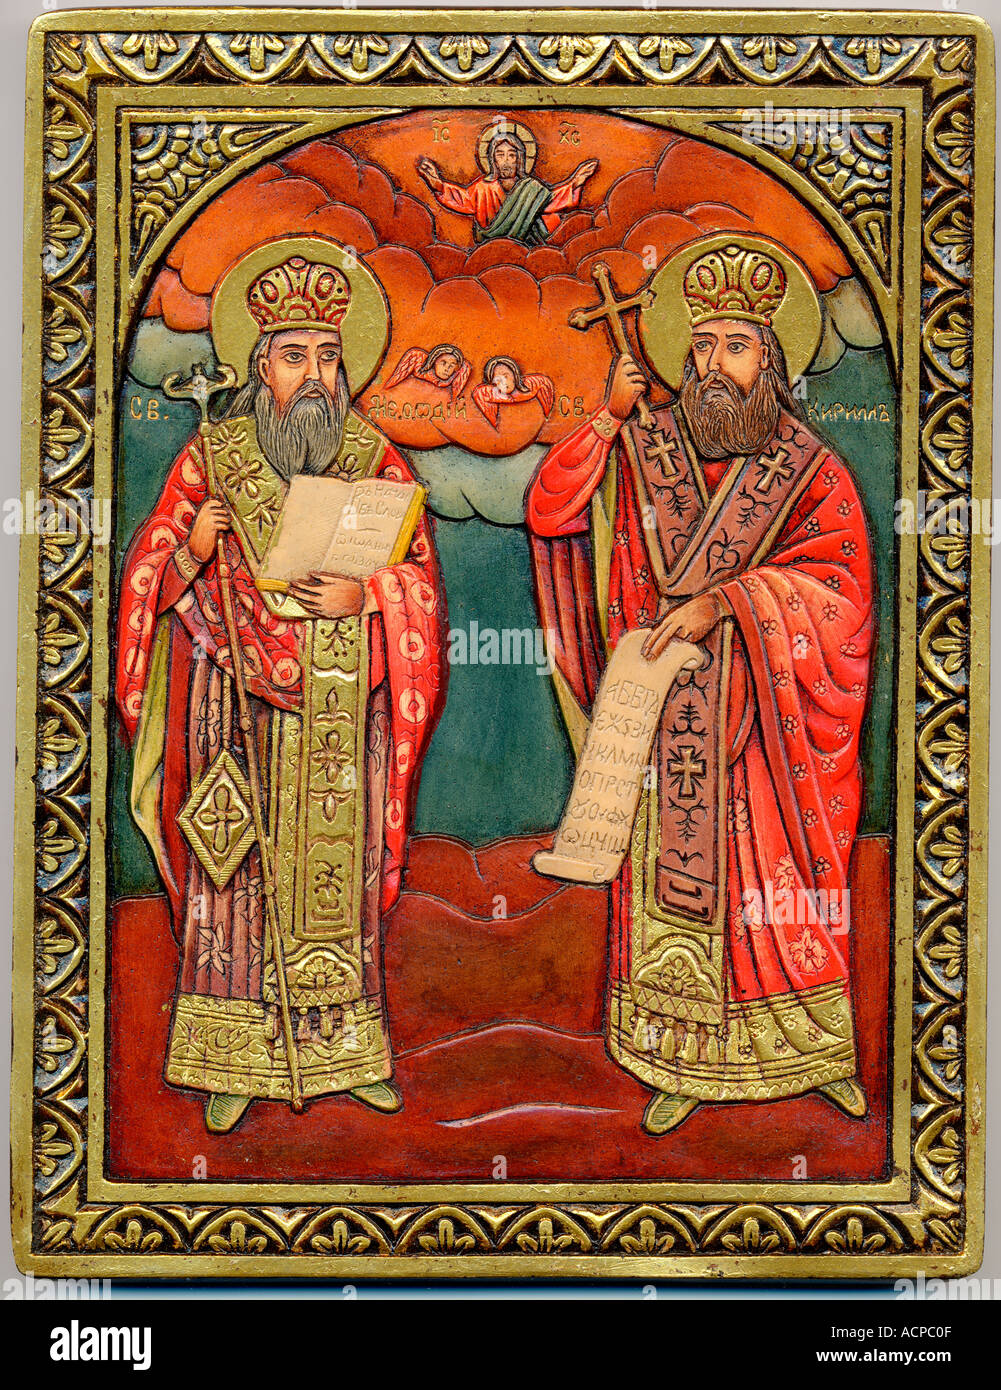 Cyril And Methodius Icon From Sofia The Capital Of Bulgaria - Stock Image